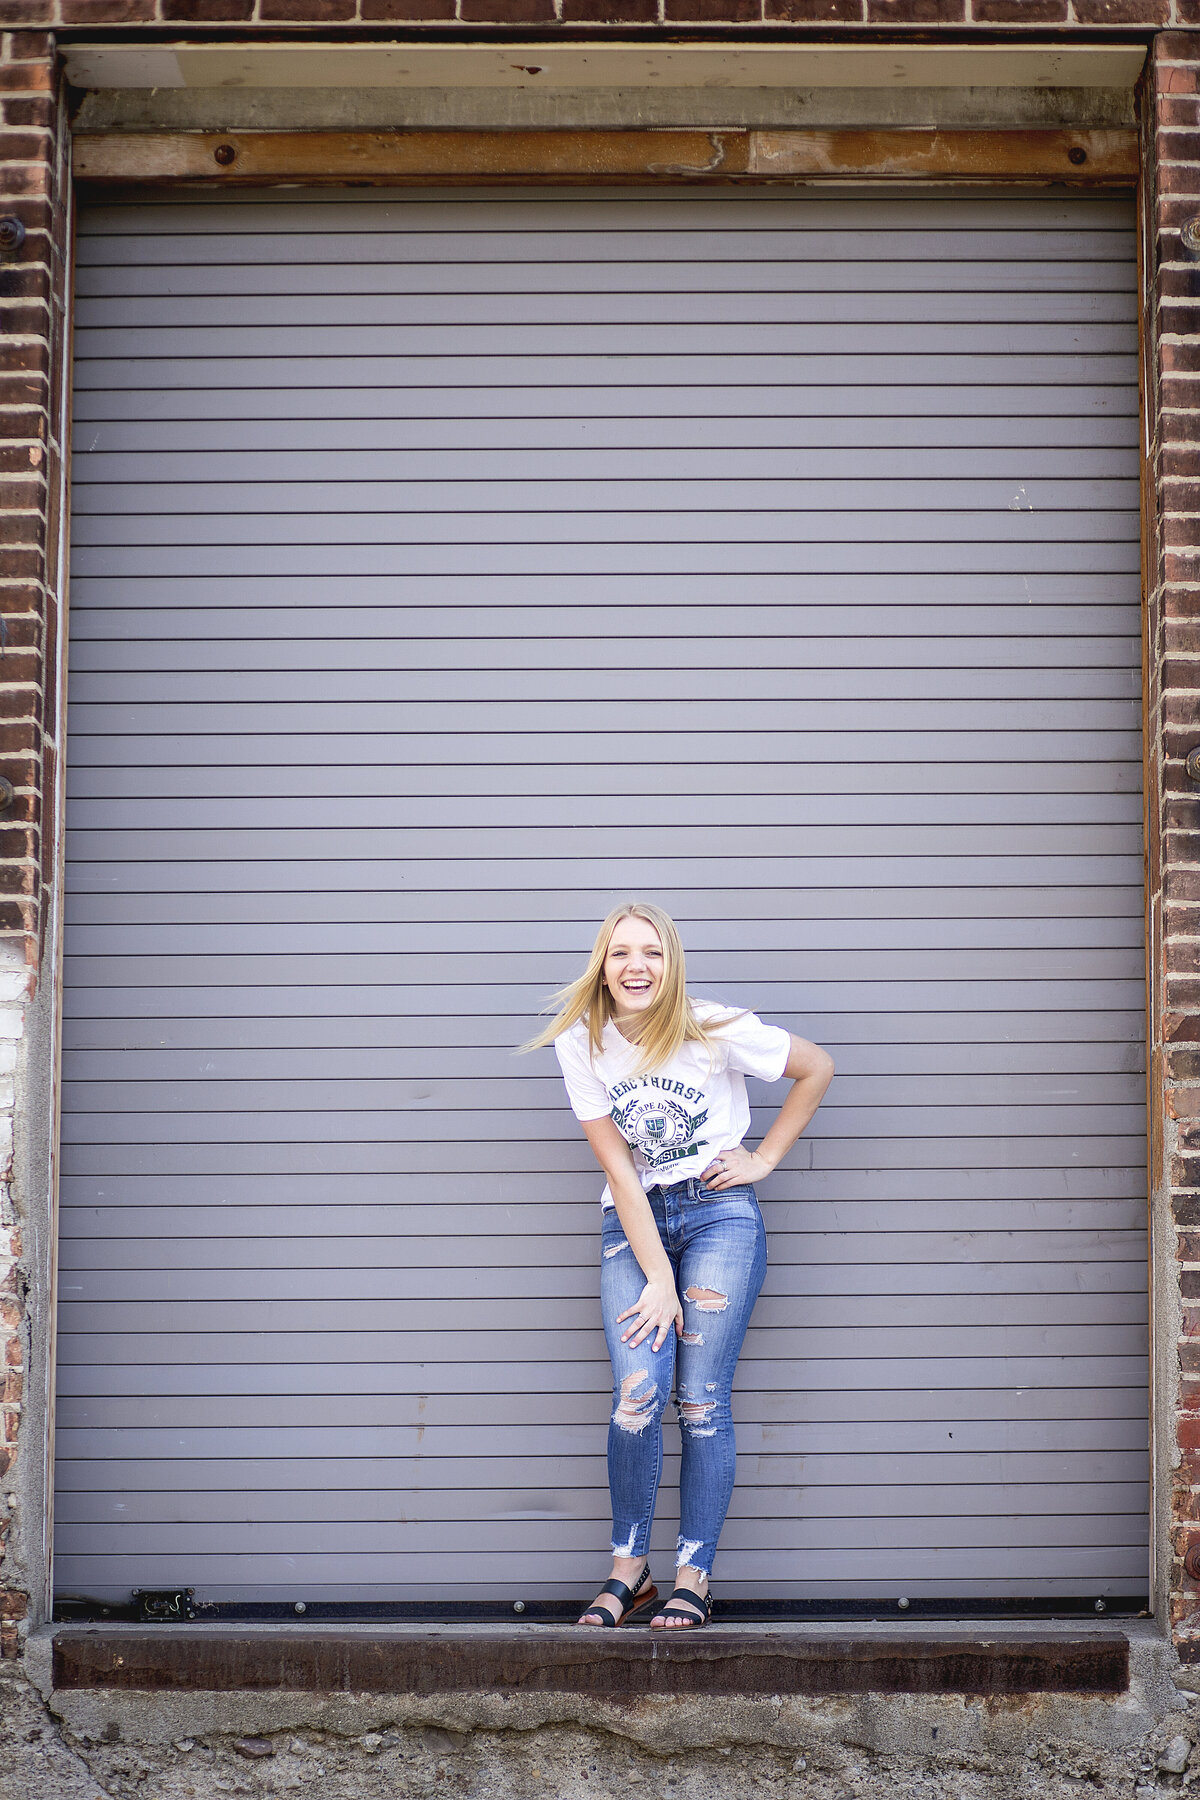 Victor-New-York-Senior-pictures-Carrie-Eigbrett-Photography-4045